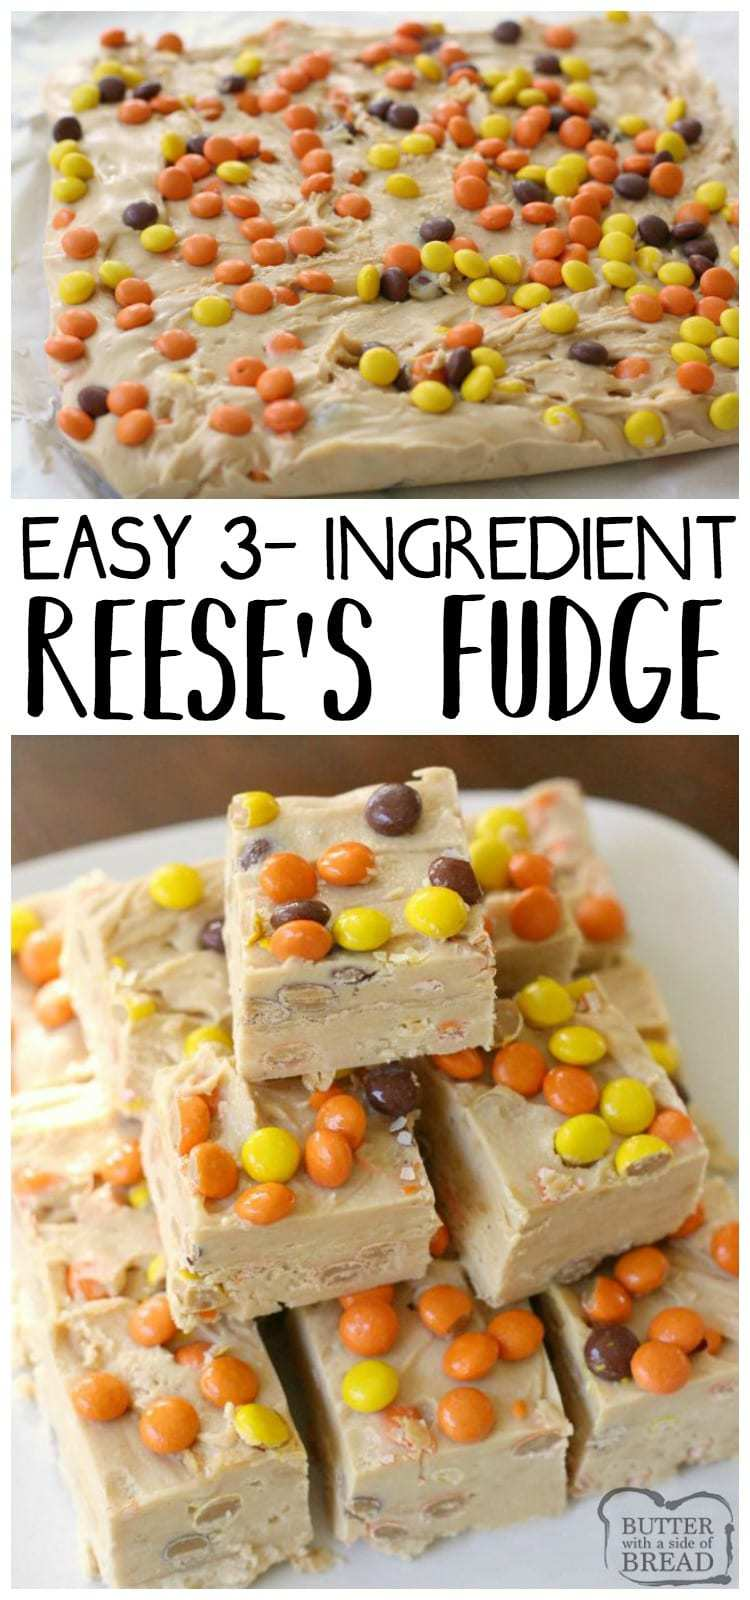 Simple & easy 3 ingredient Reese's Fudge recipe that's made in minutes! Smooth, creamy texture & peanut butter flavor throughout this tasty treat. Easy #fudge homemade #candy #recipe from Butter With A Side of Bread